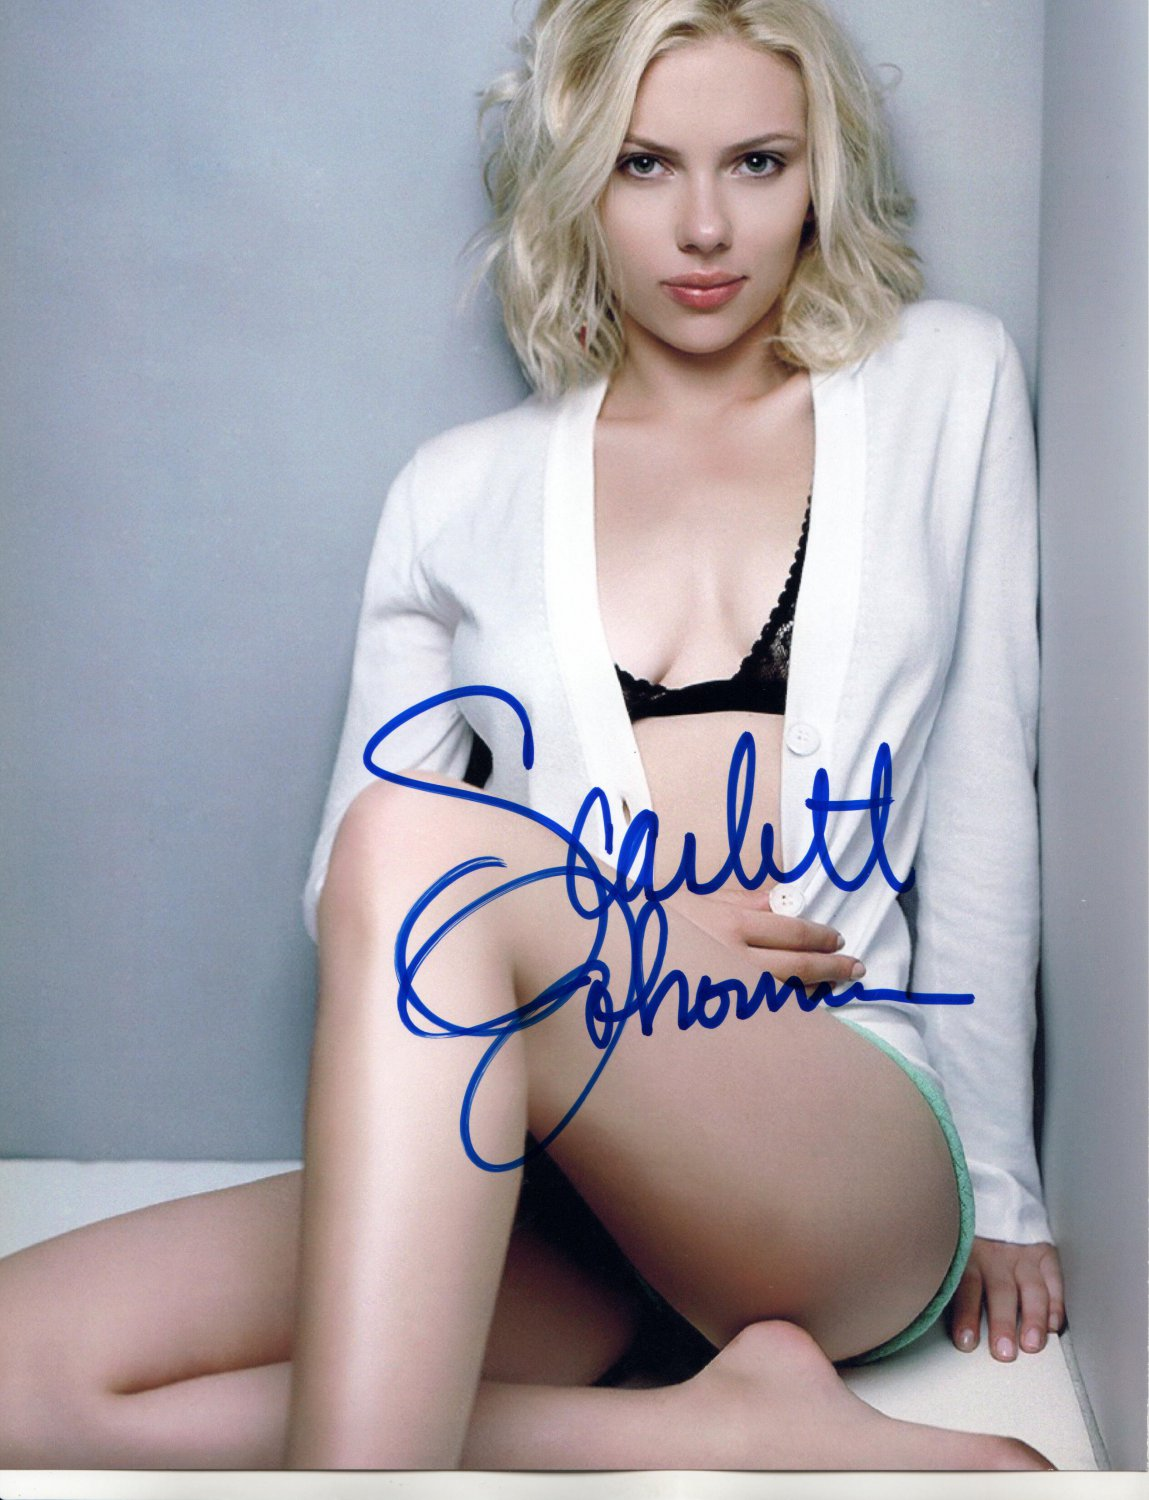 SCARLETT JOHANSSON - ULTRA SEXY ACTRESS - HAND SIGNED AUTOGRAPHED PHOTO WITH COA